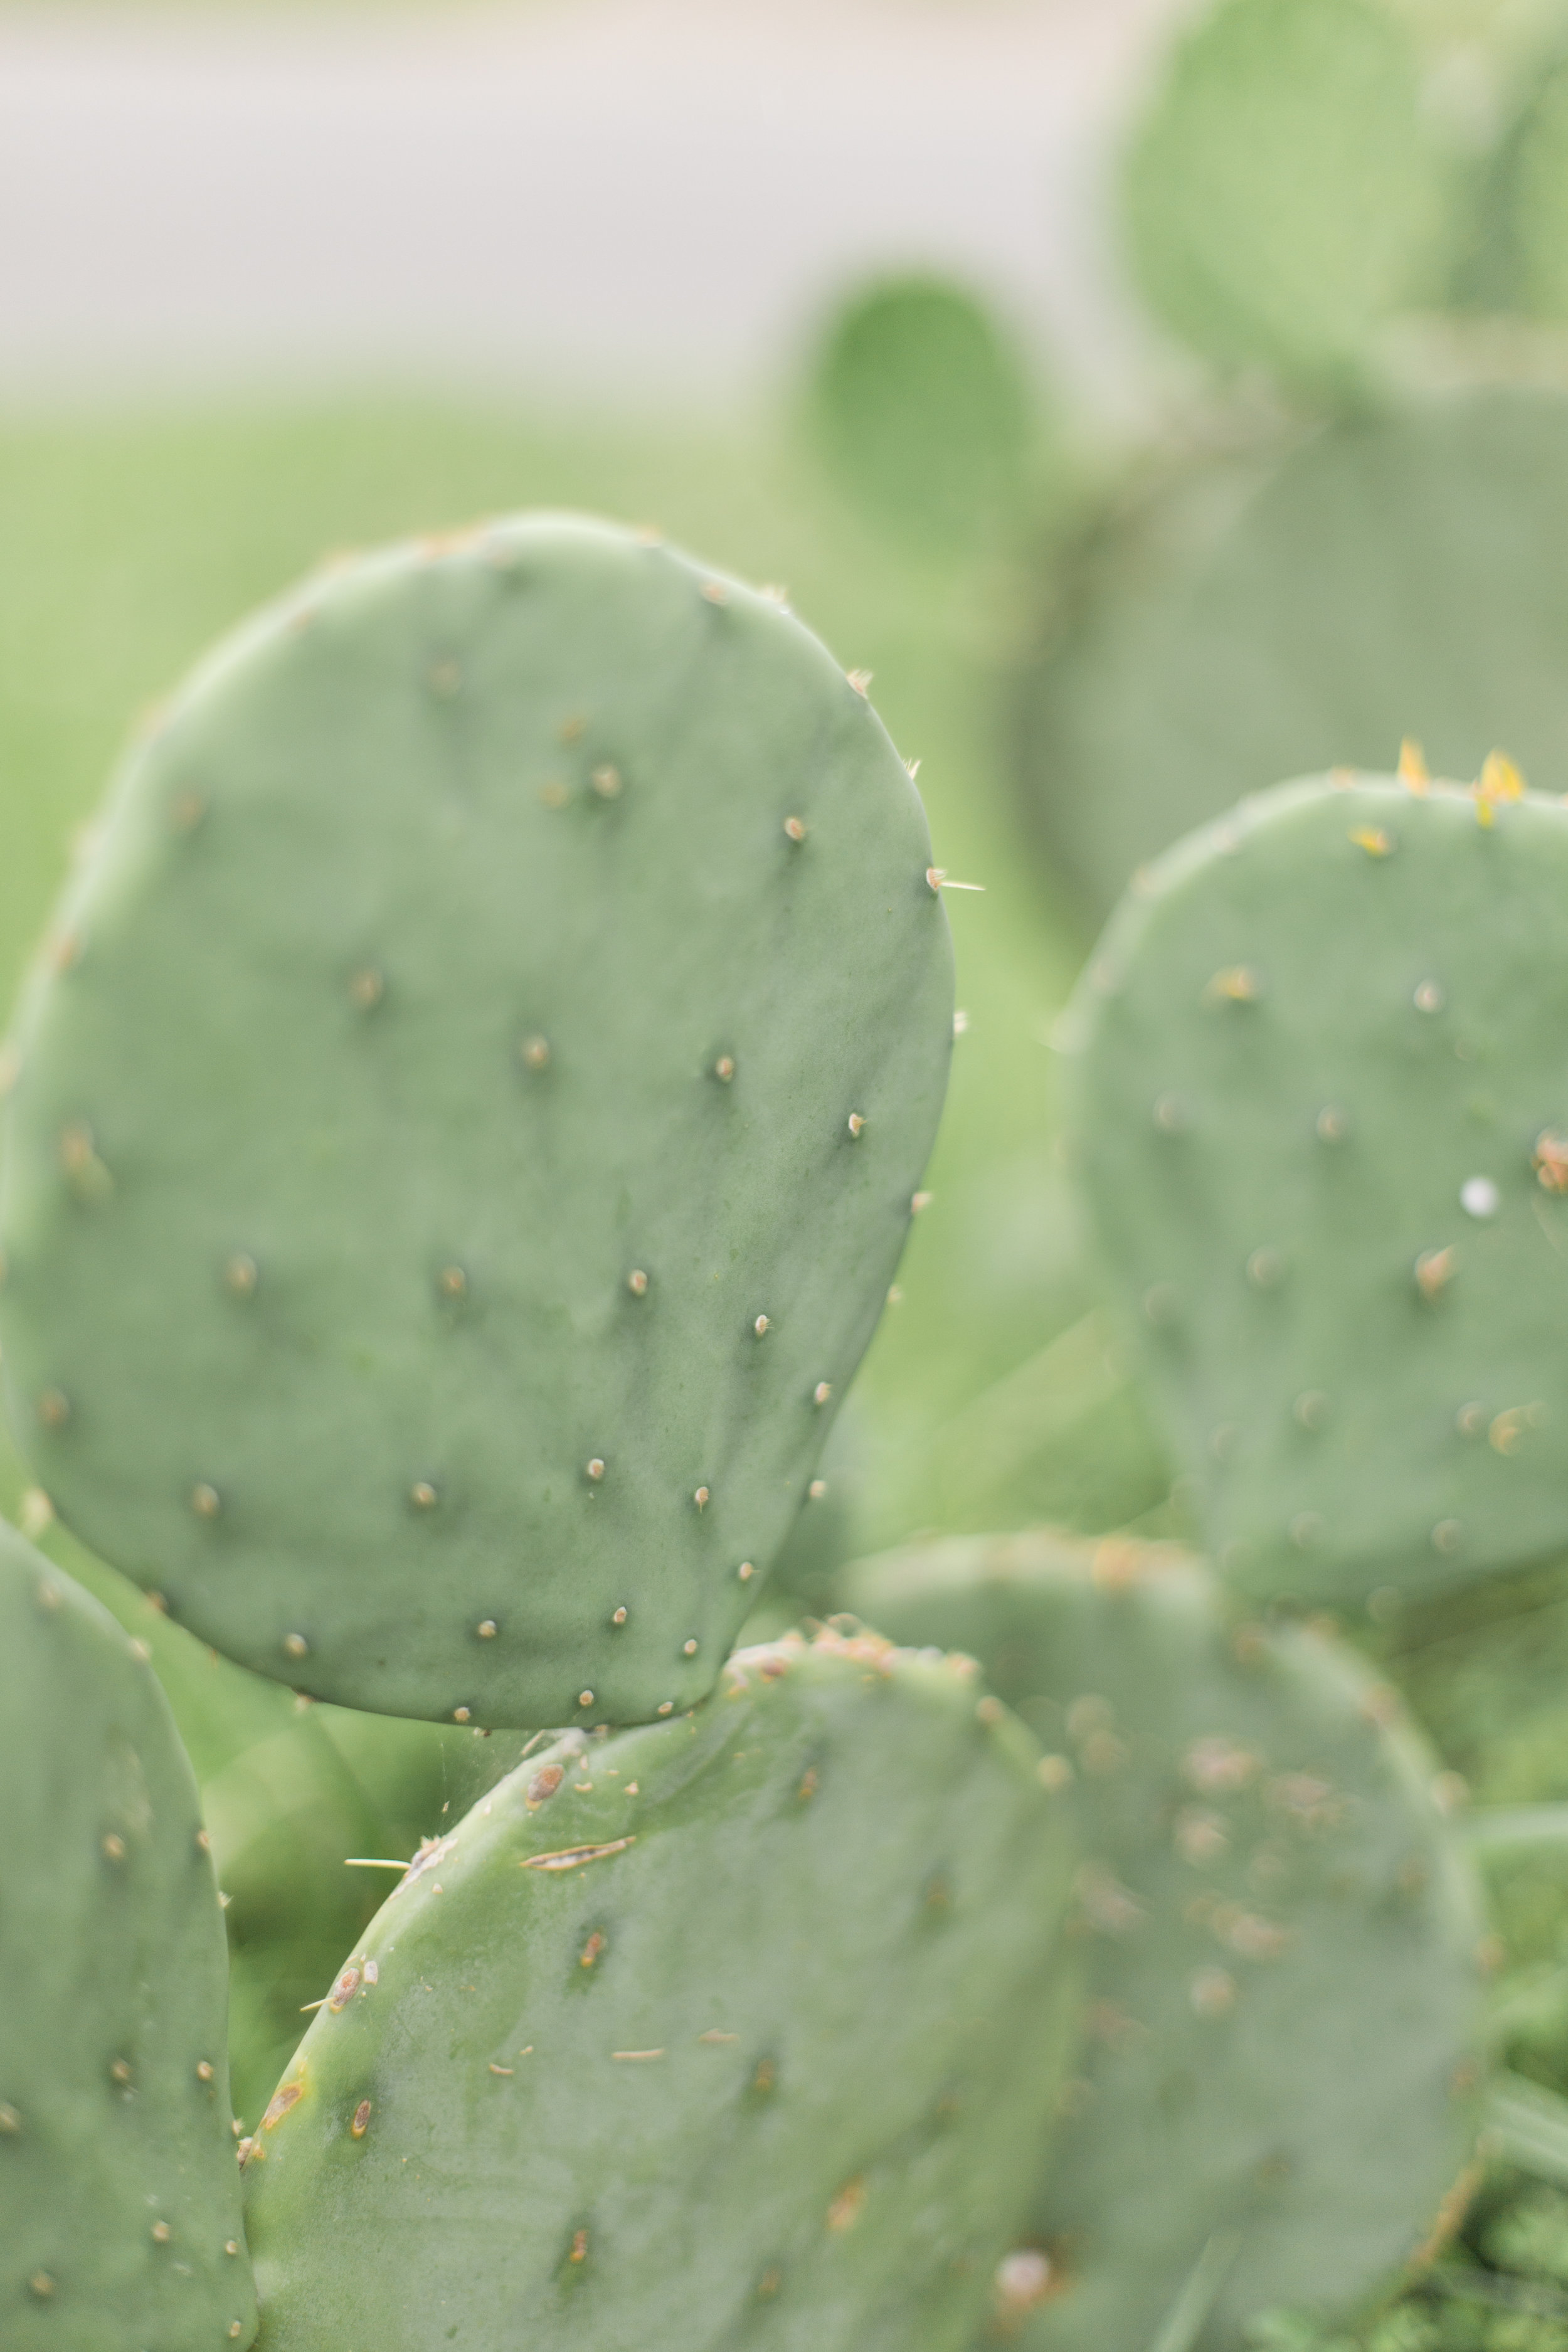 Pretty green prickly pear cactus. Our tortoises love to eat them.